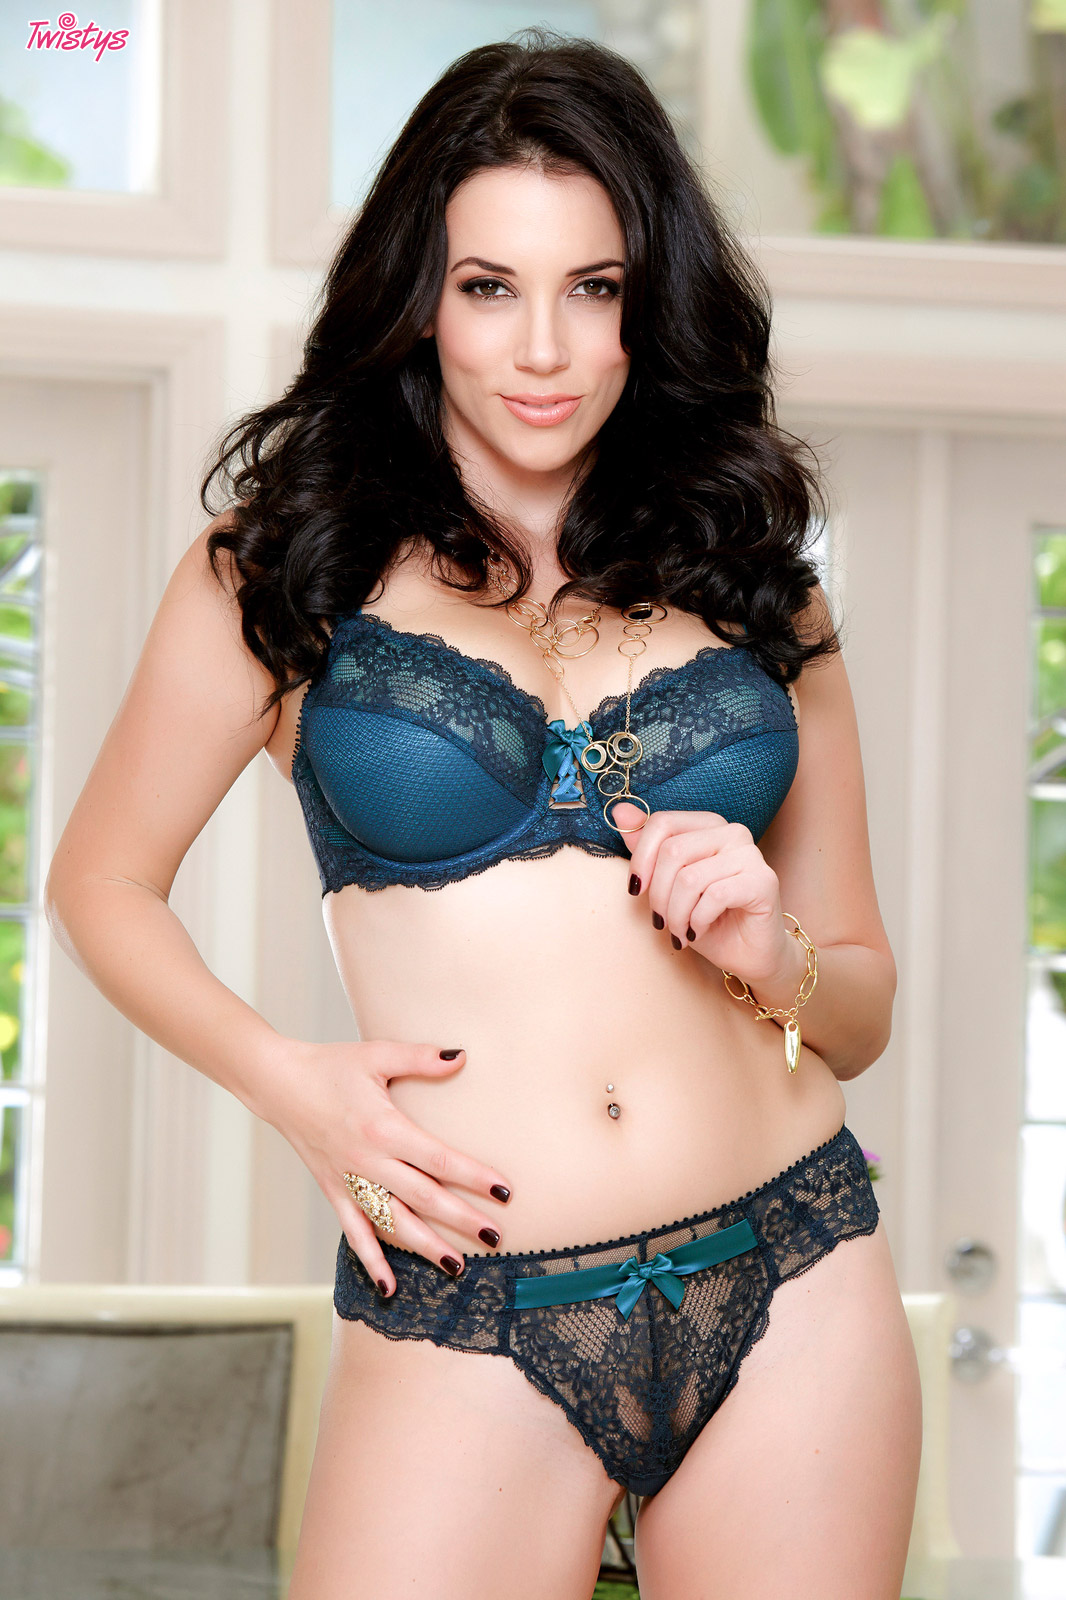 PHOTO | 0c219376 - LUST AND LUSCIOUS! Jelena Jensen is One SMOKING HOT MILF!